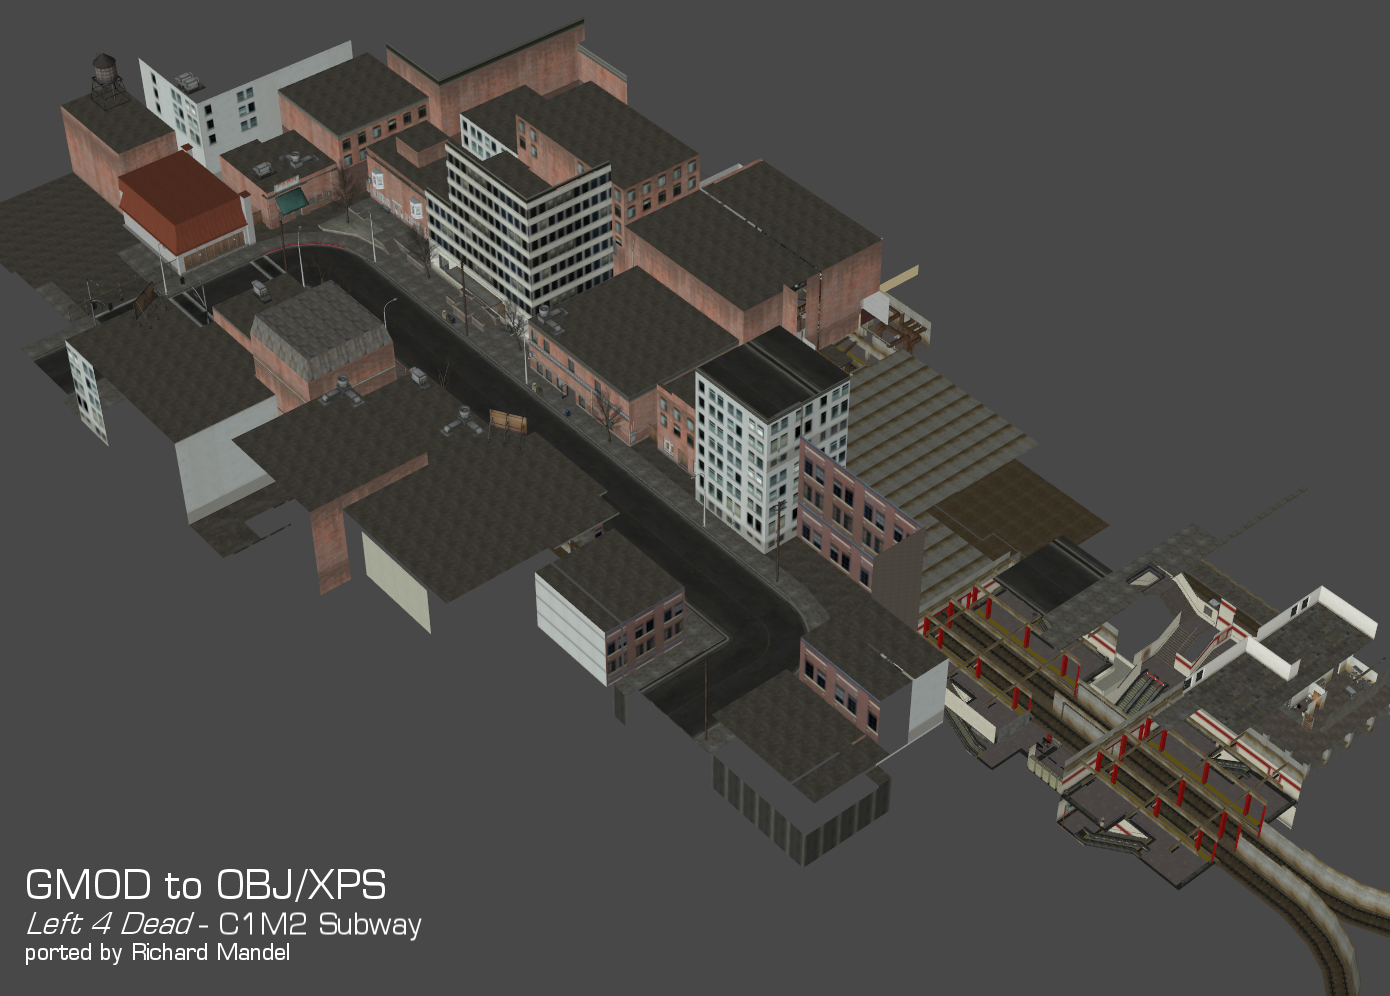 Left 4 Dead - C1M2 Subway (cleaned) by DigitalExplorations